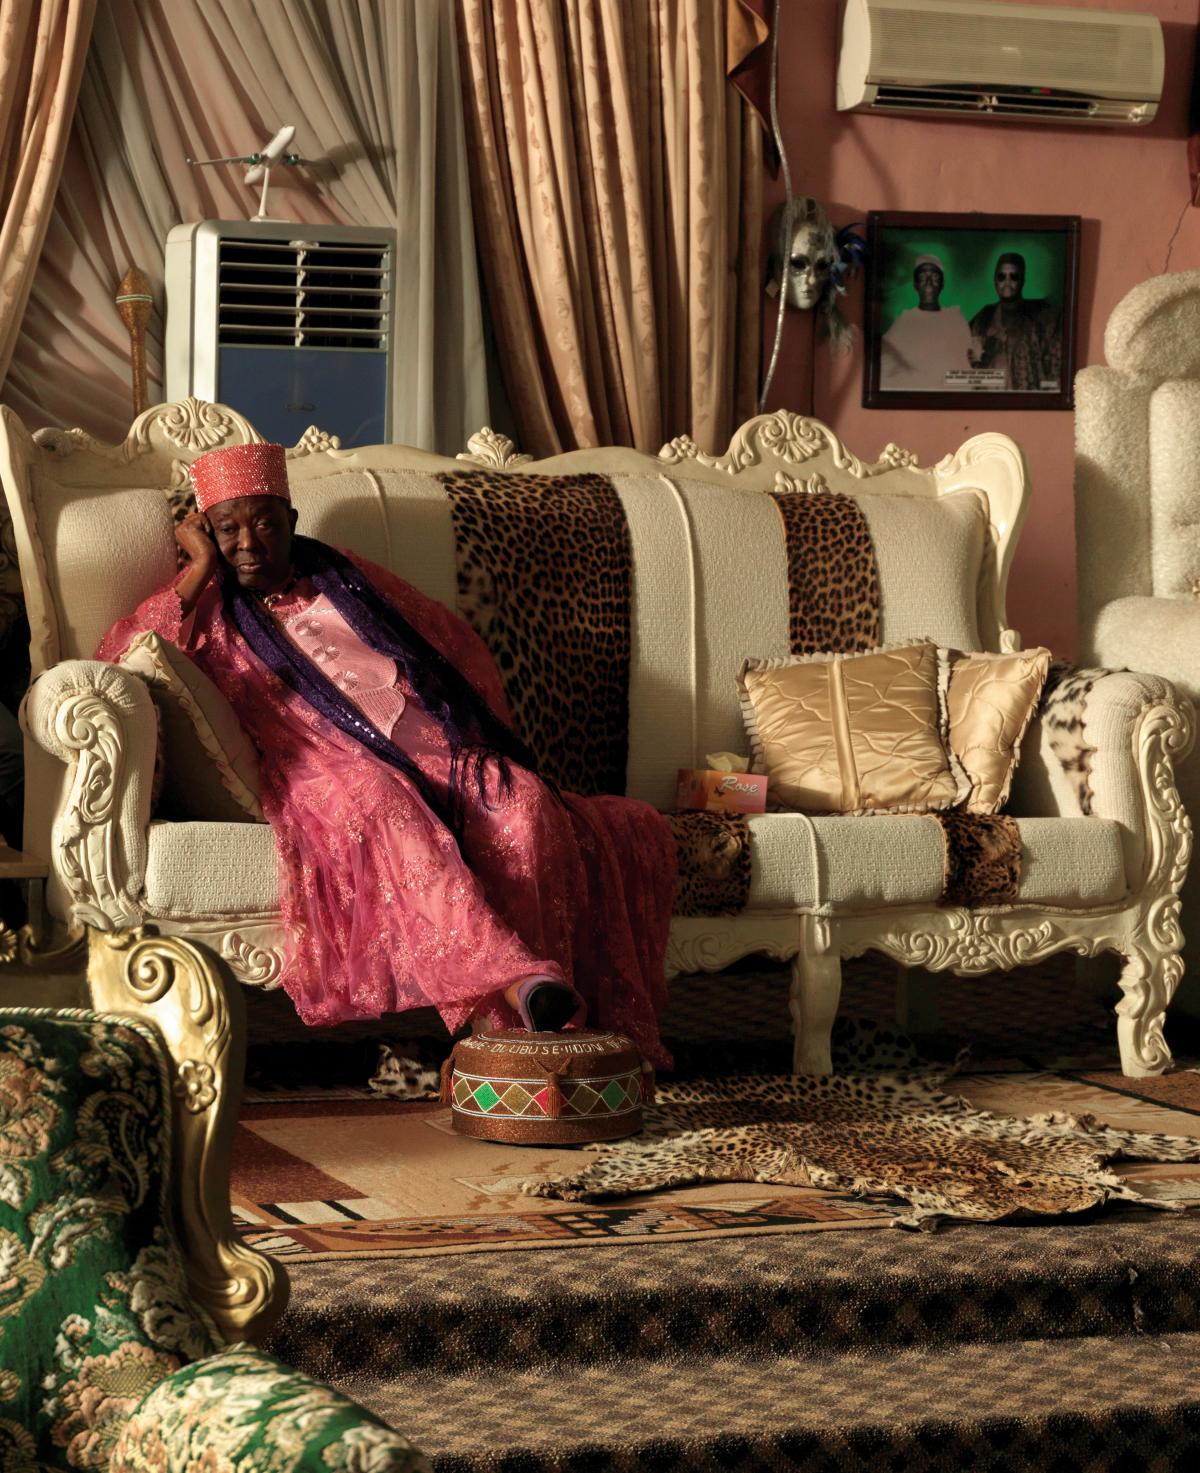 HRM Alayeluwa Oba Okunade Sijuwade, the Ooni of Ife, seated on a couch, wearing traditional, red robes, head resting on his hand